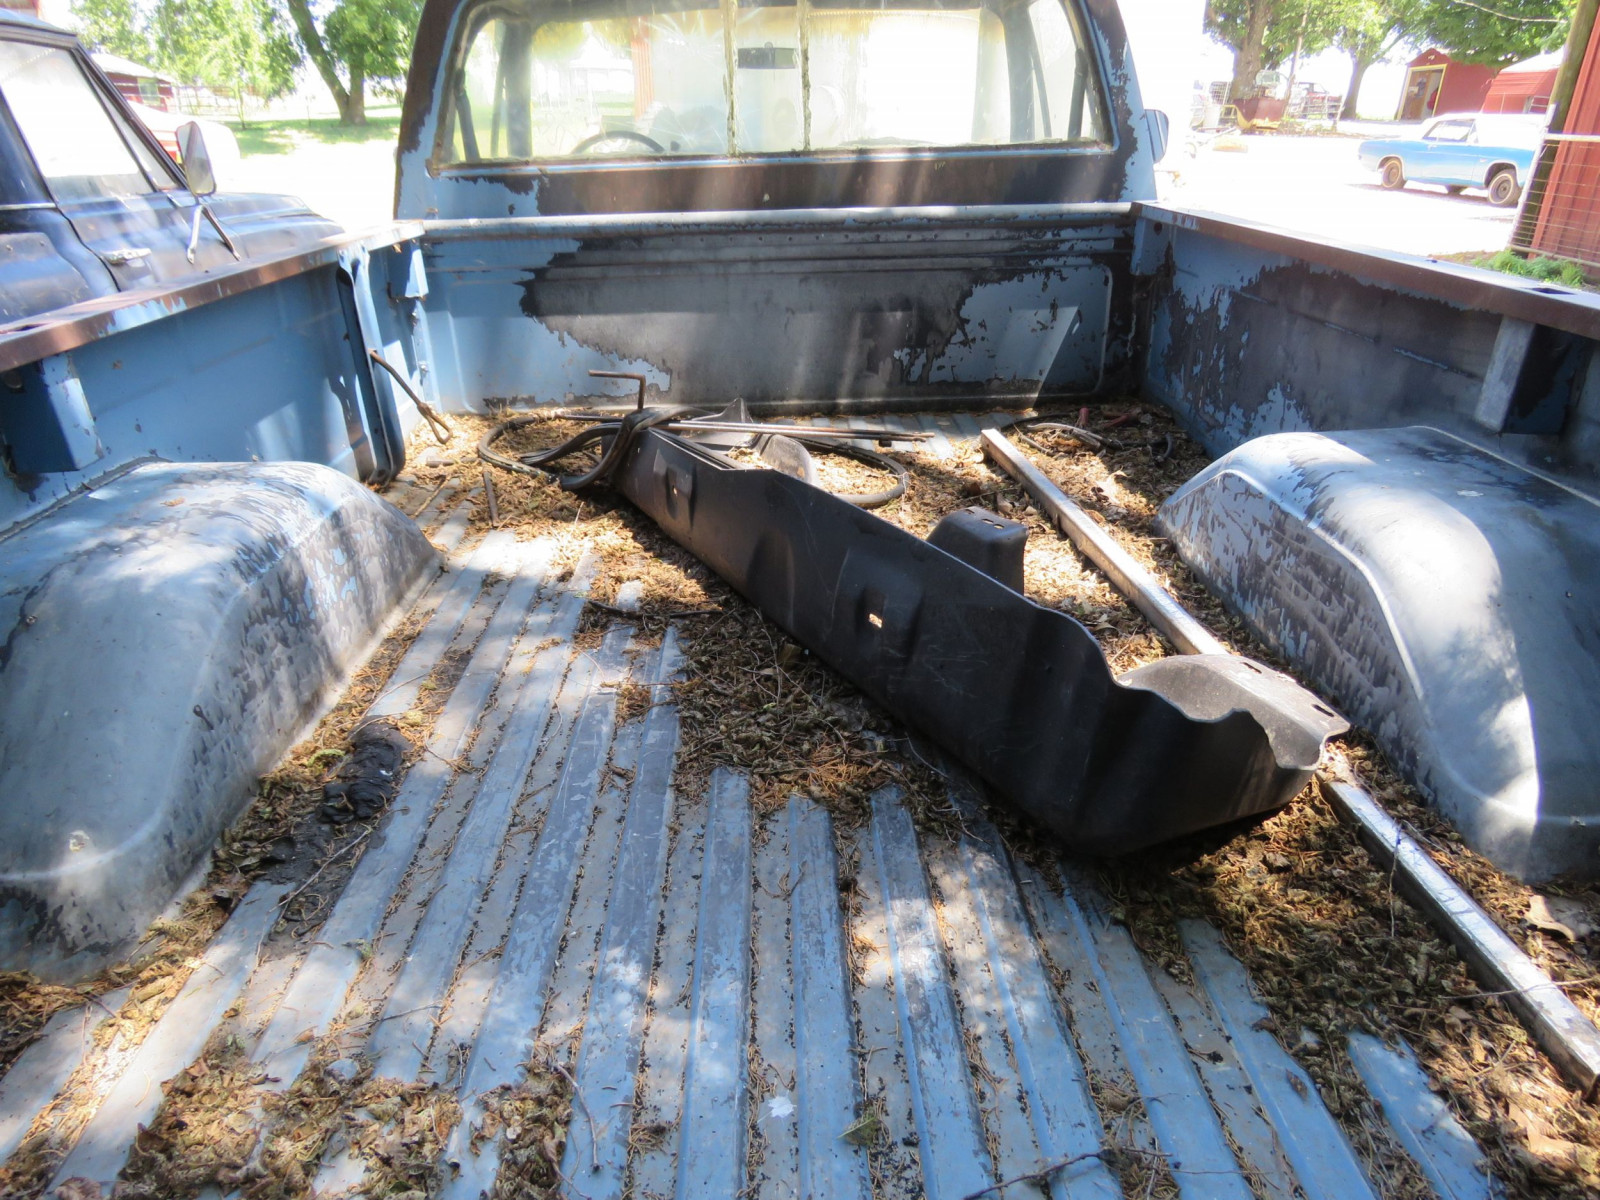 1984 Chevrolet Custom Deluxe 10 Pickup for Restore - Image 6